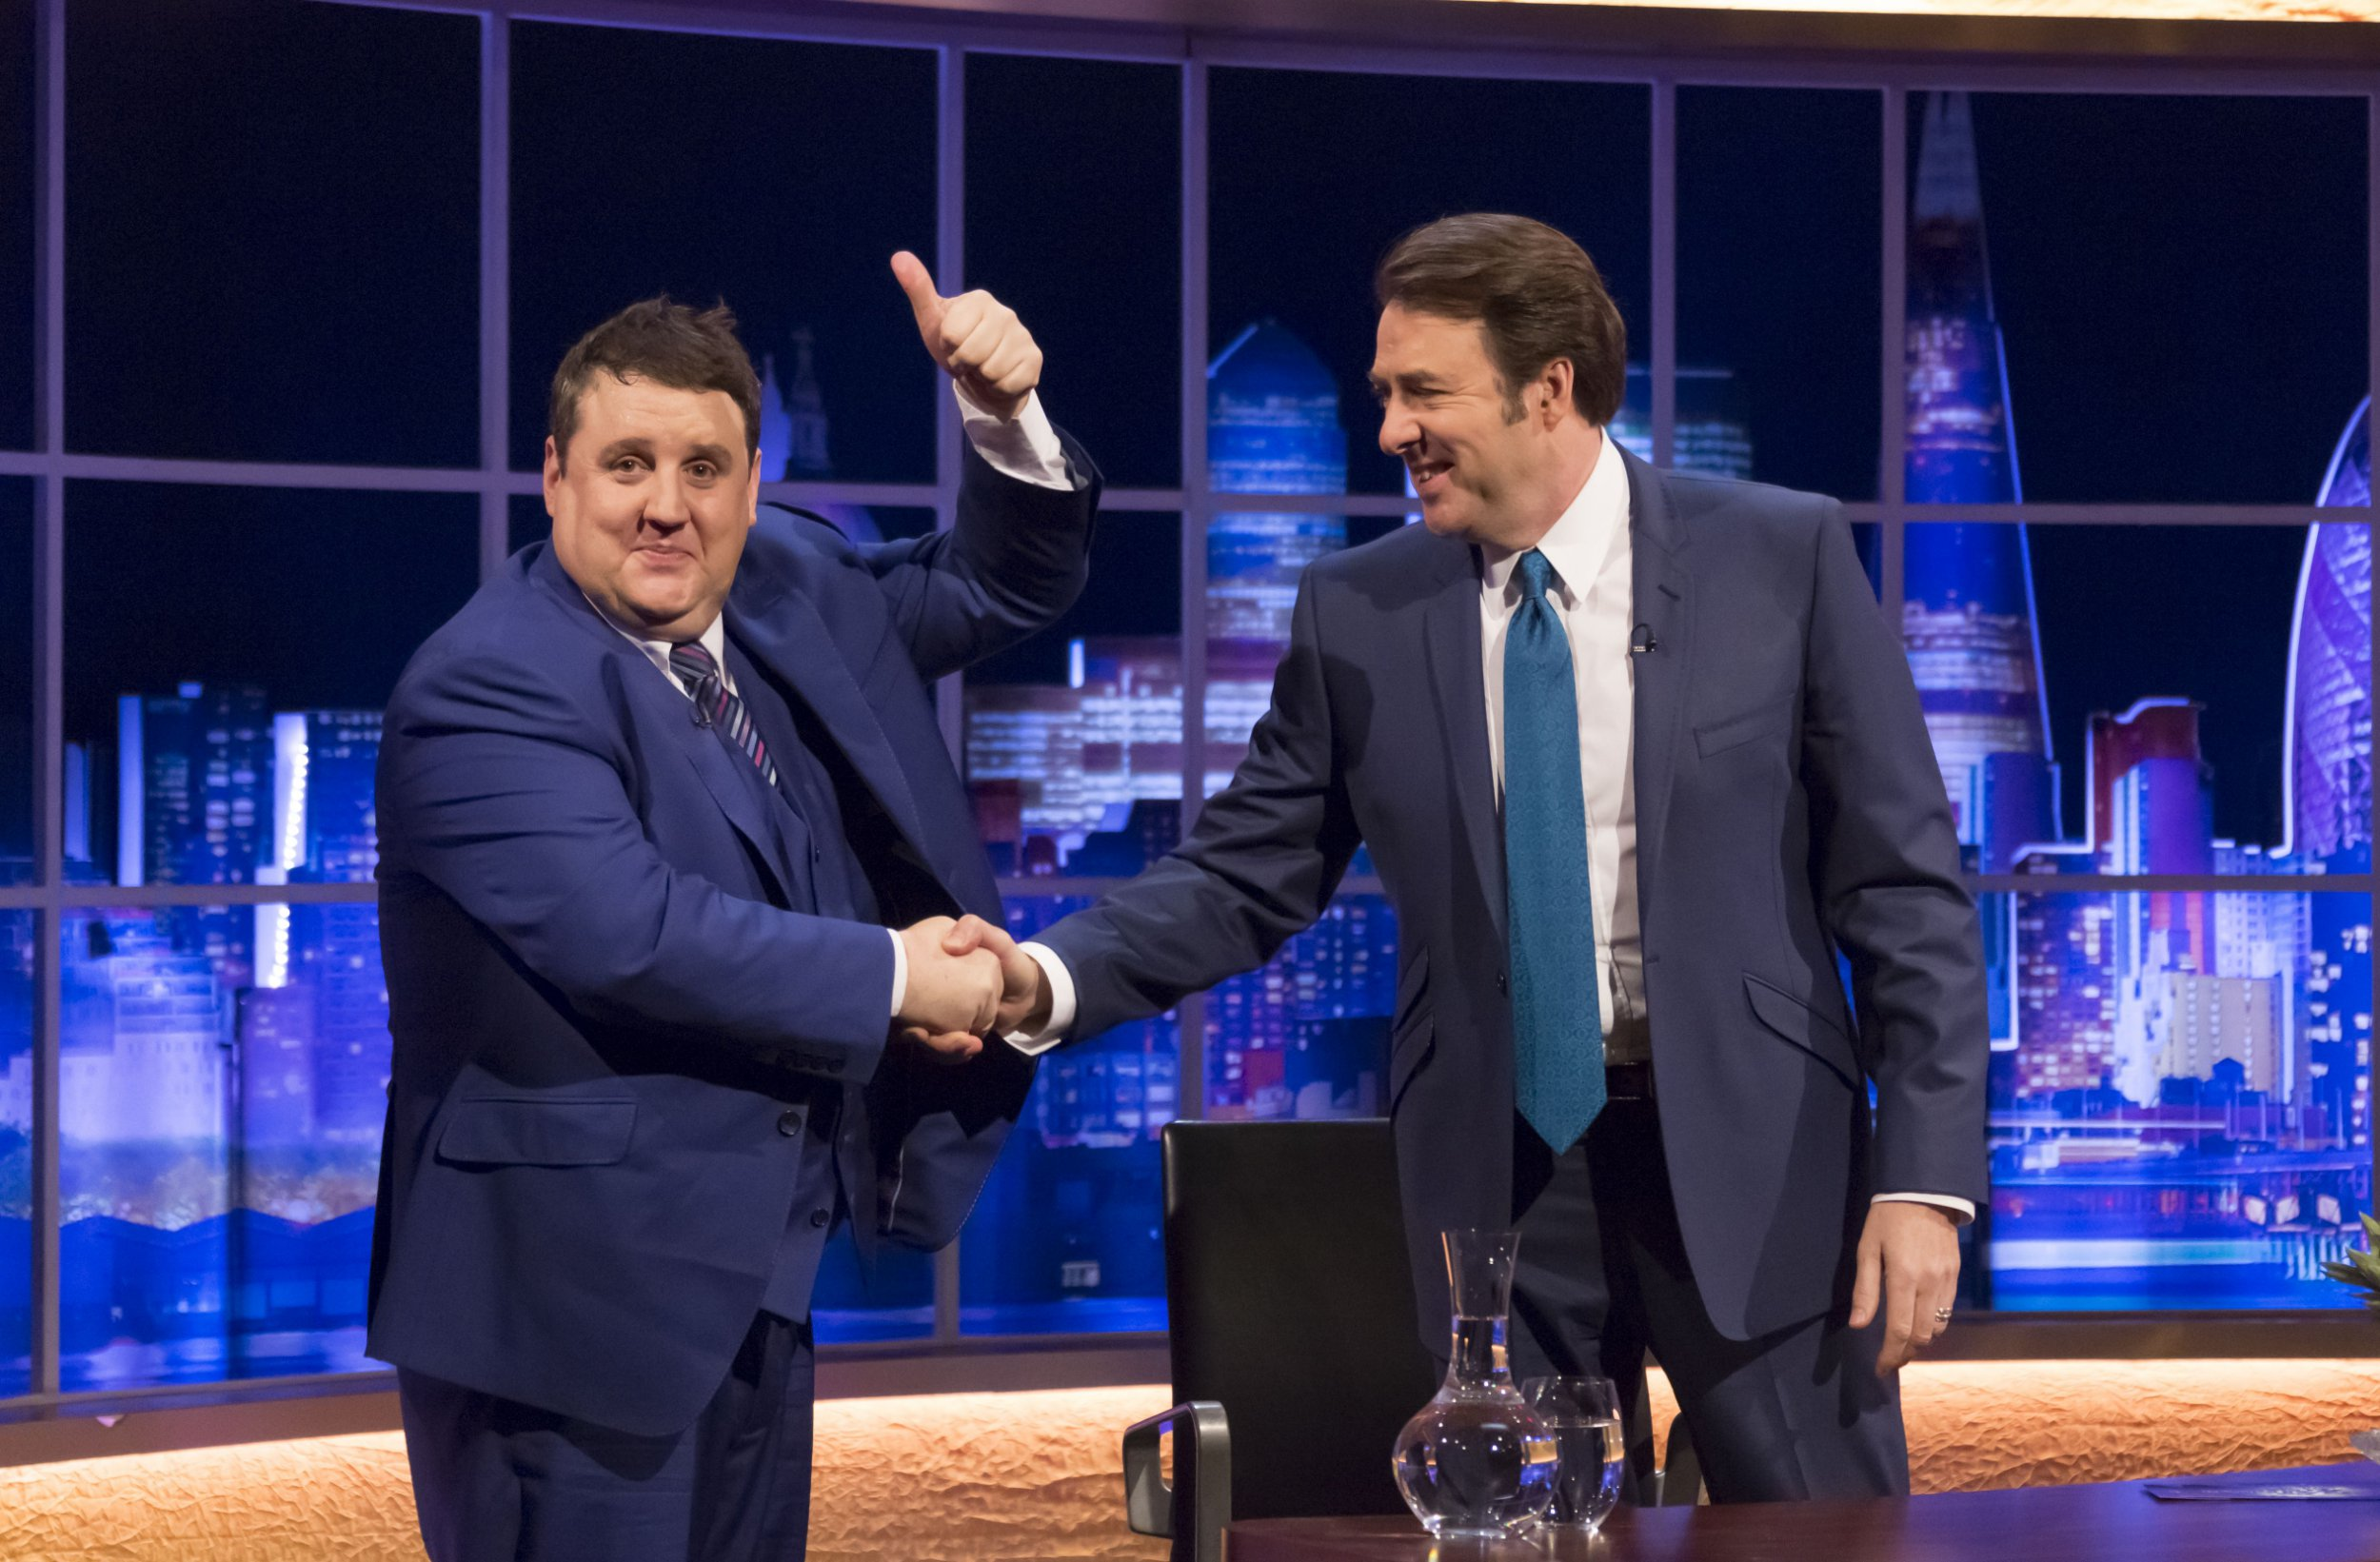 Peter Kay misbehaves spectacularly on The Jonathan Ross Show inviting audience members on stage and climbing on set